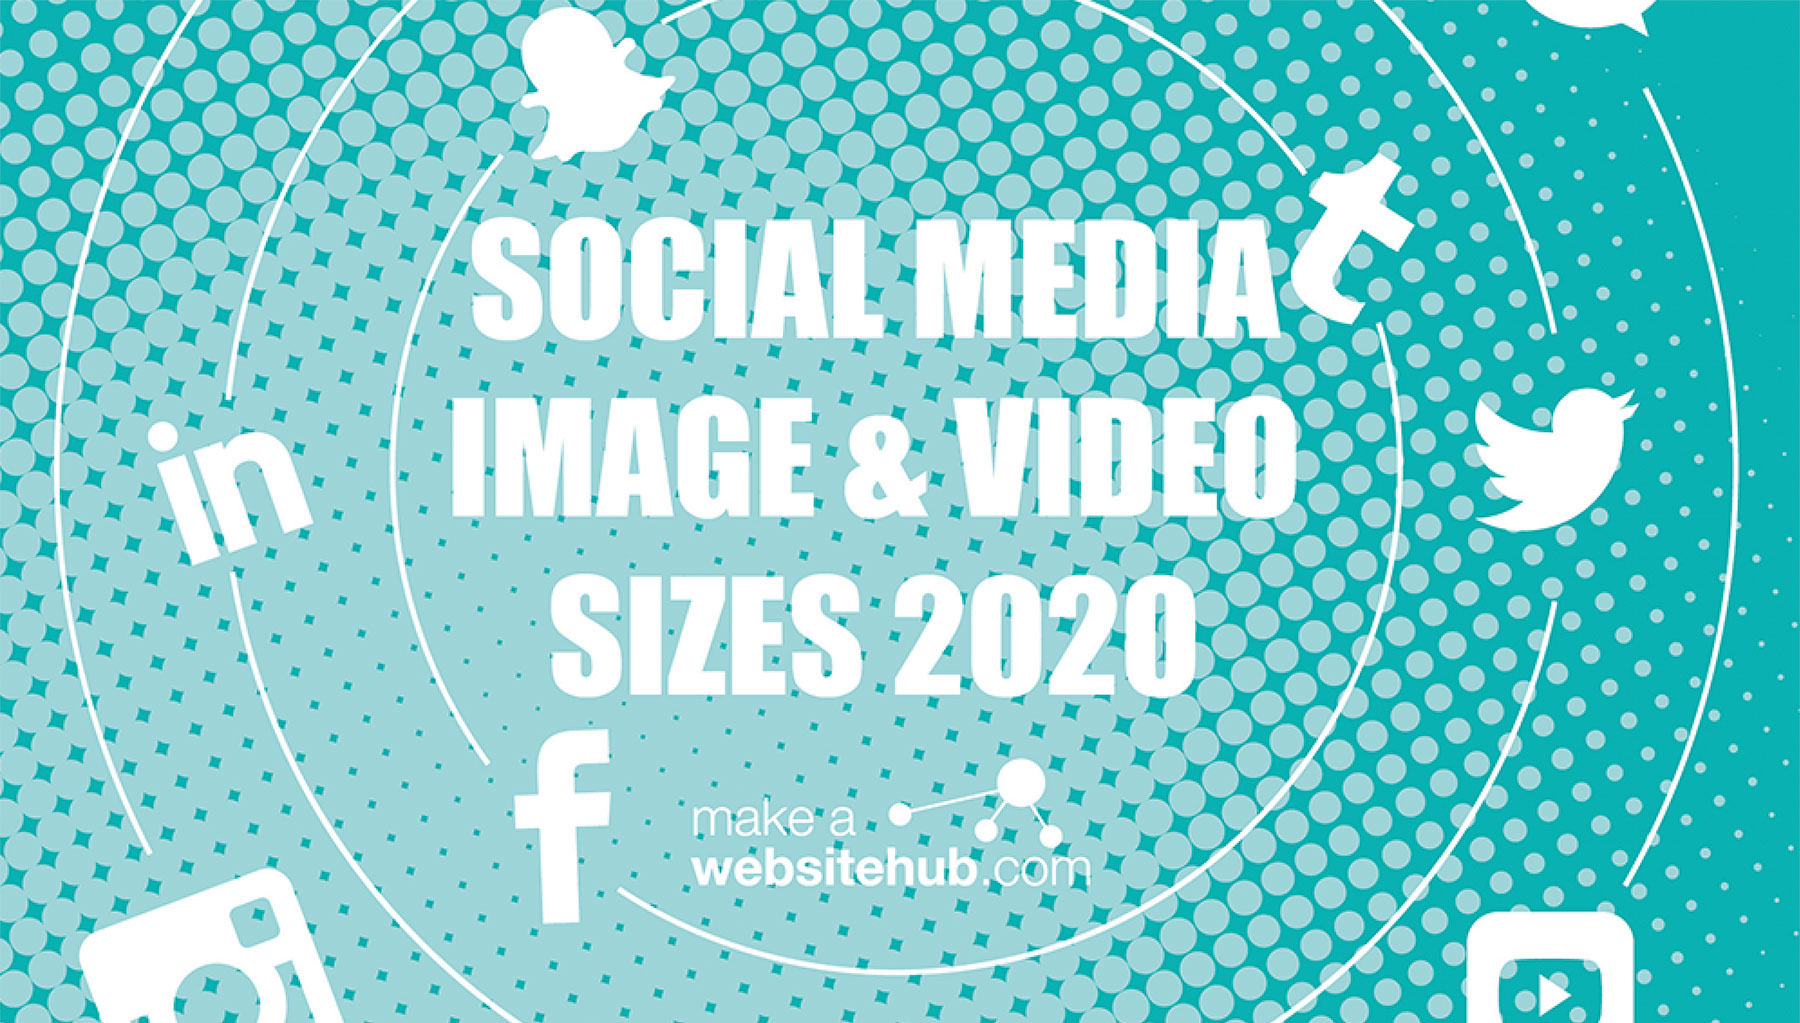 2020 Social Media Image Sizes Cheat Sheet.